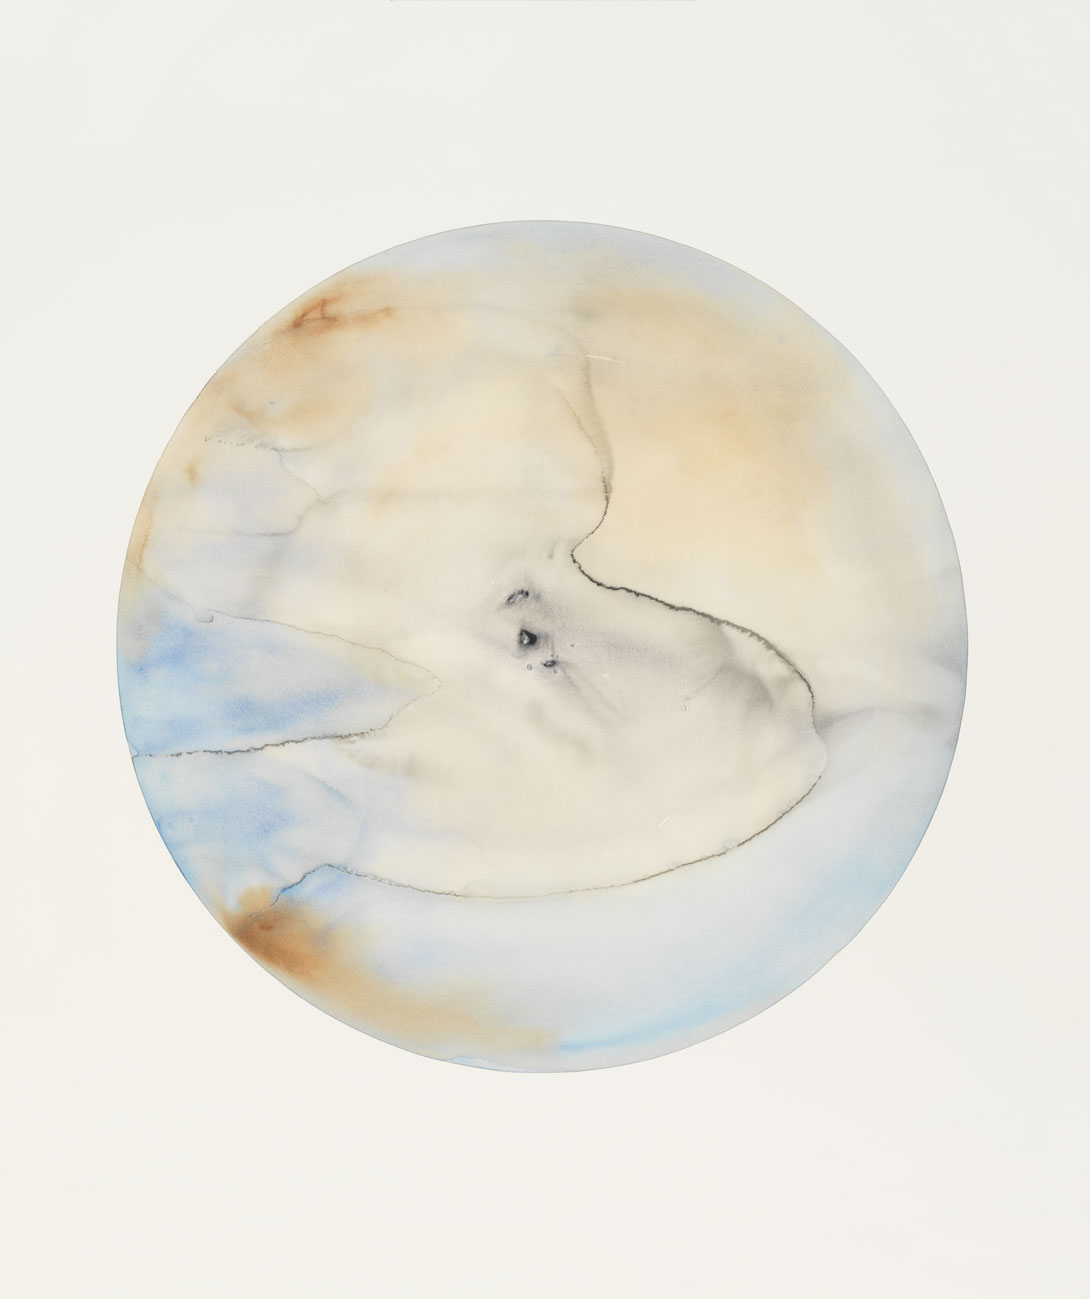 Glacial landscape no. 8, 2018, watercolour and pencil on paper, 151 x 151 x 8 cm (59 ½ x 59 ½ x 3 1?8 in). Picture credit: Jens Ziehe